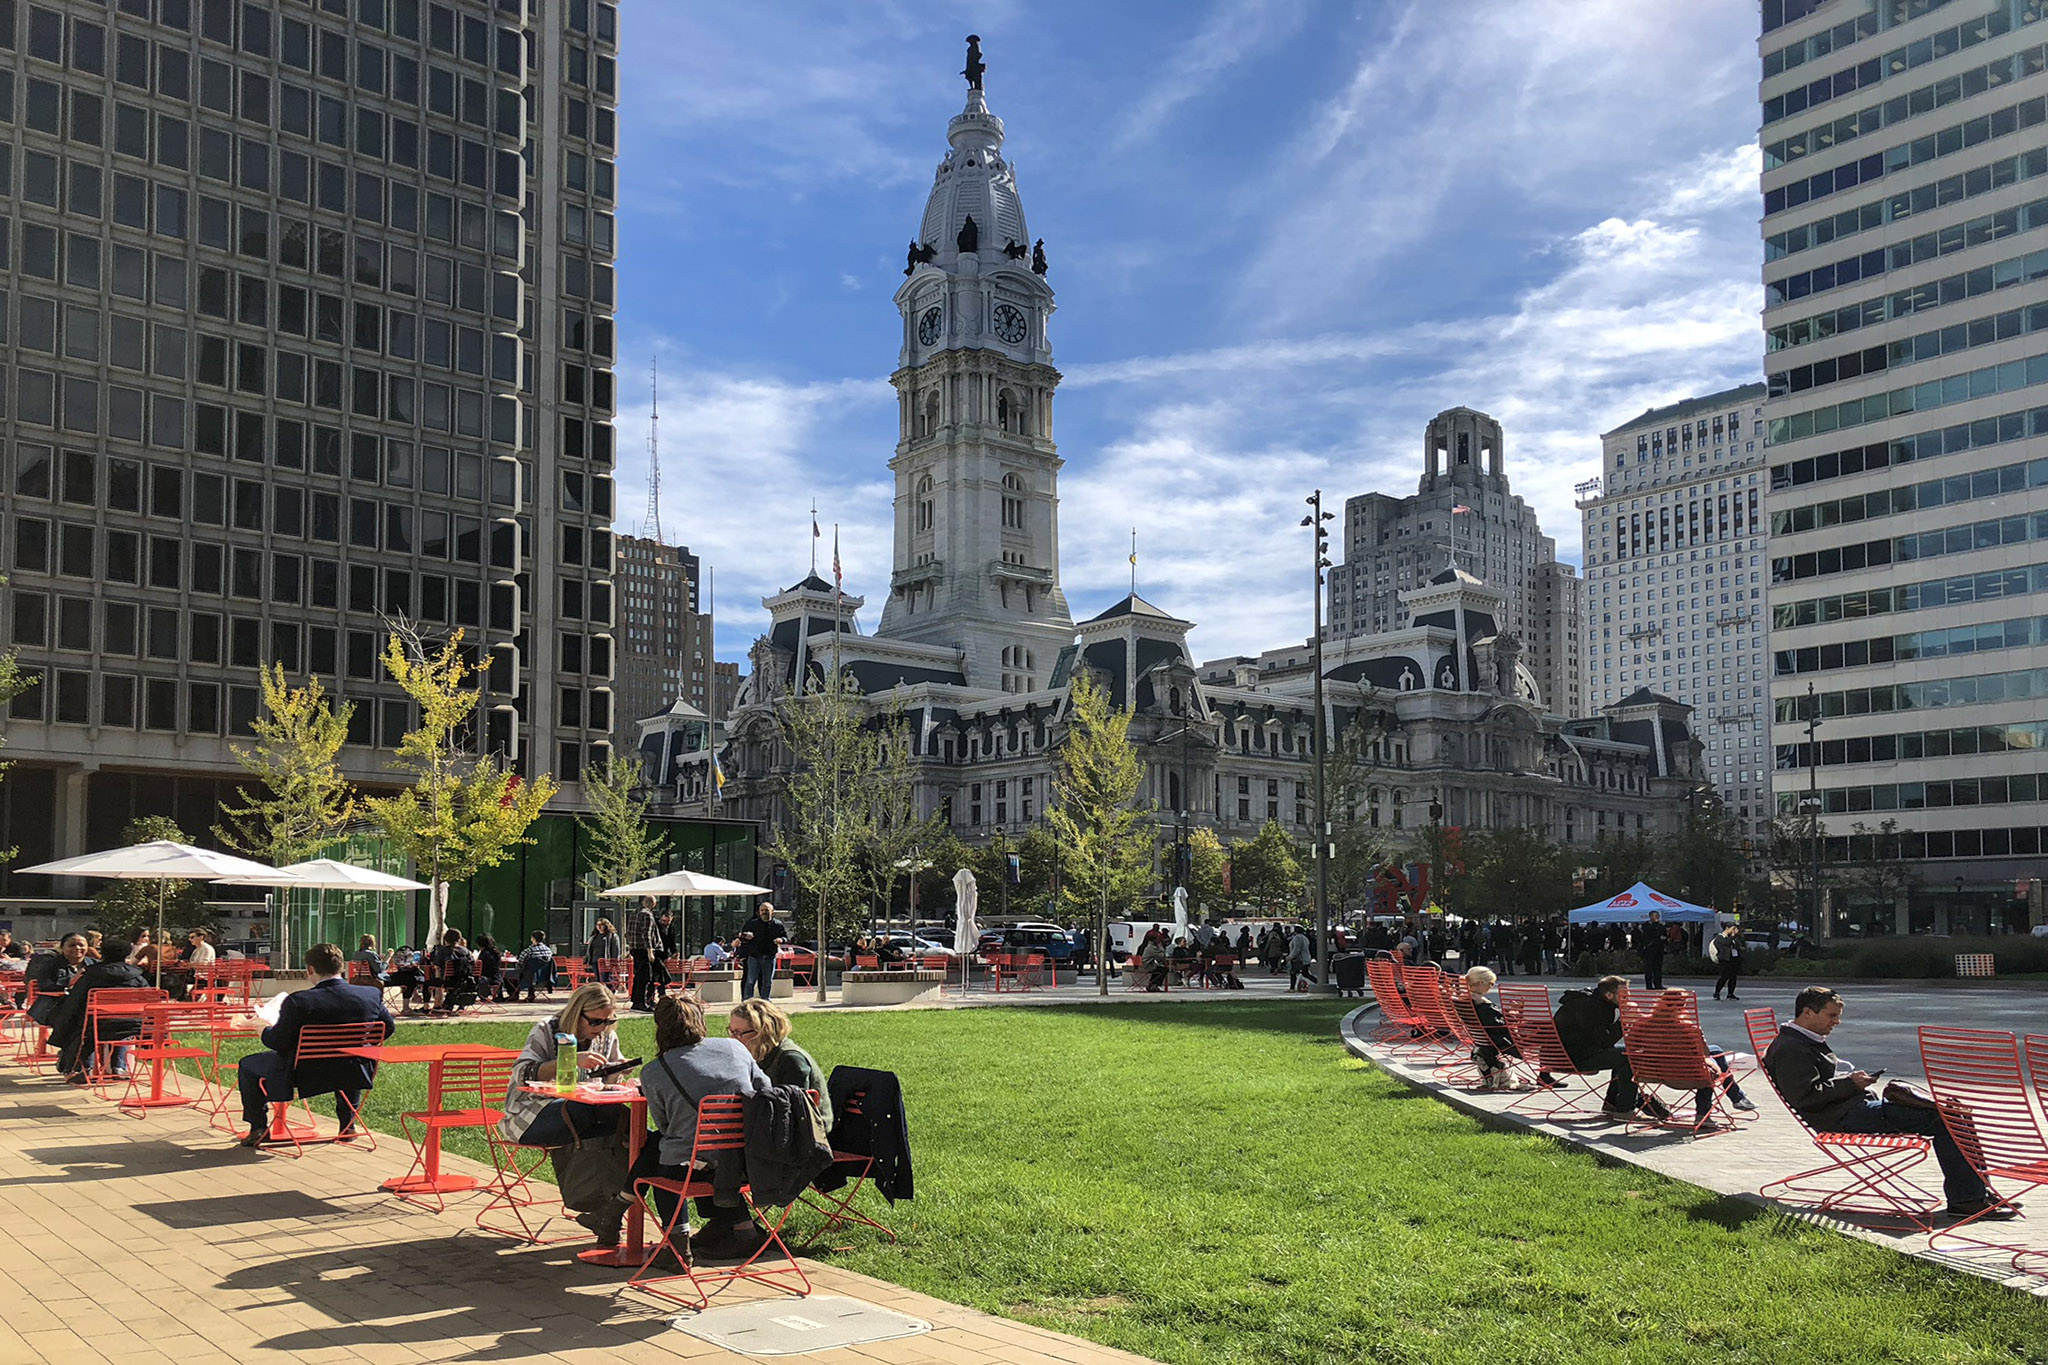 Beginner's guide: 30 things to do and see in Philadelphia